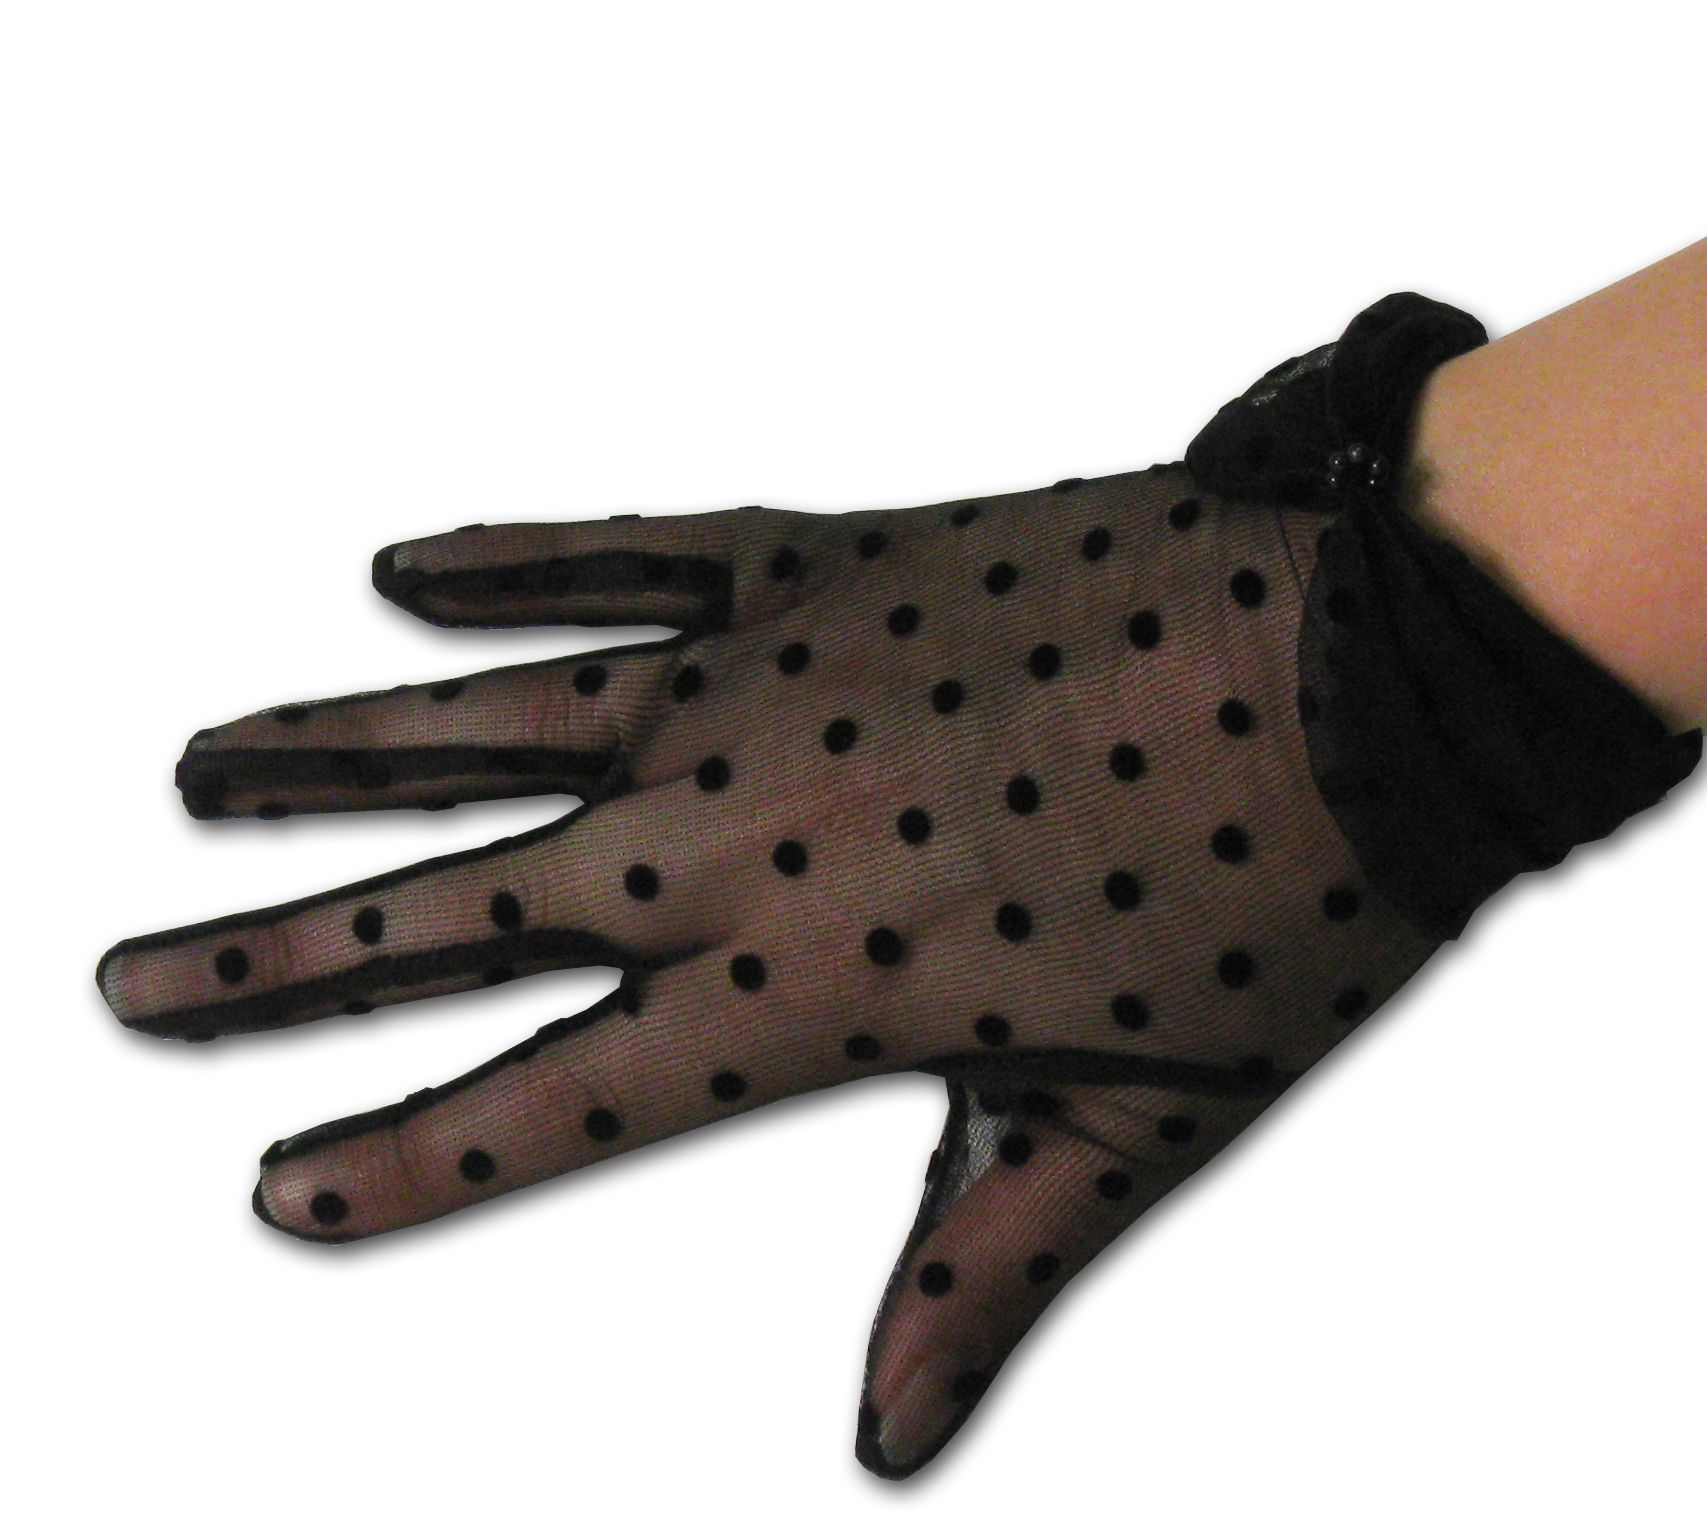 Black gloves with bow - Luxurious Nylon Sheer Gloves With Small Polka Dots In Your Choice Of Black Ivory Or White One Size Fits Most Gloves Pinterest Colors The O Jays